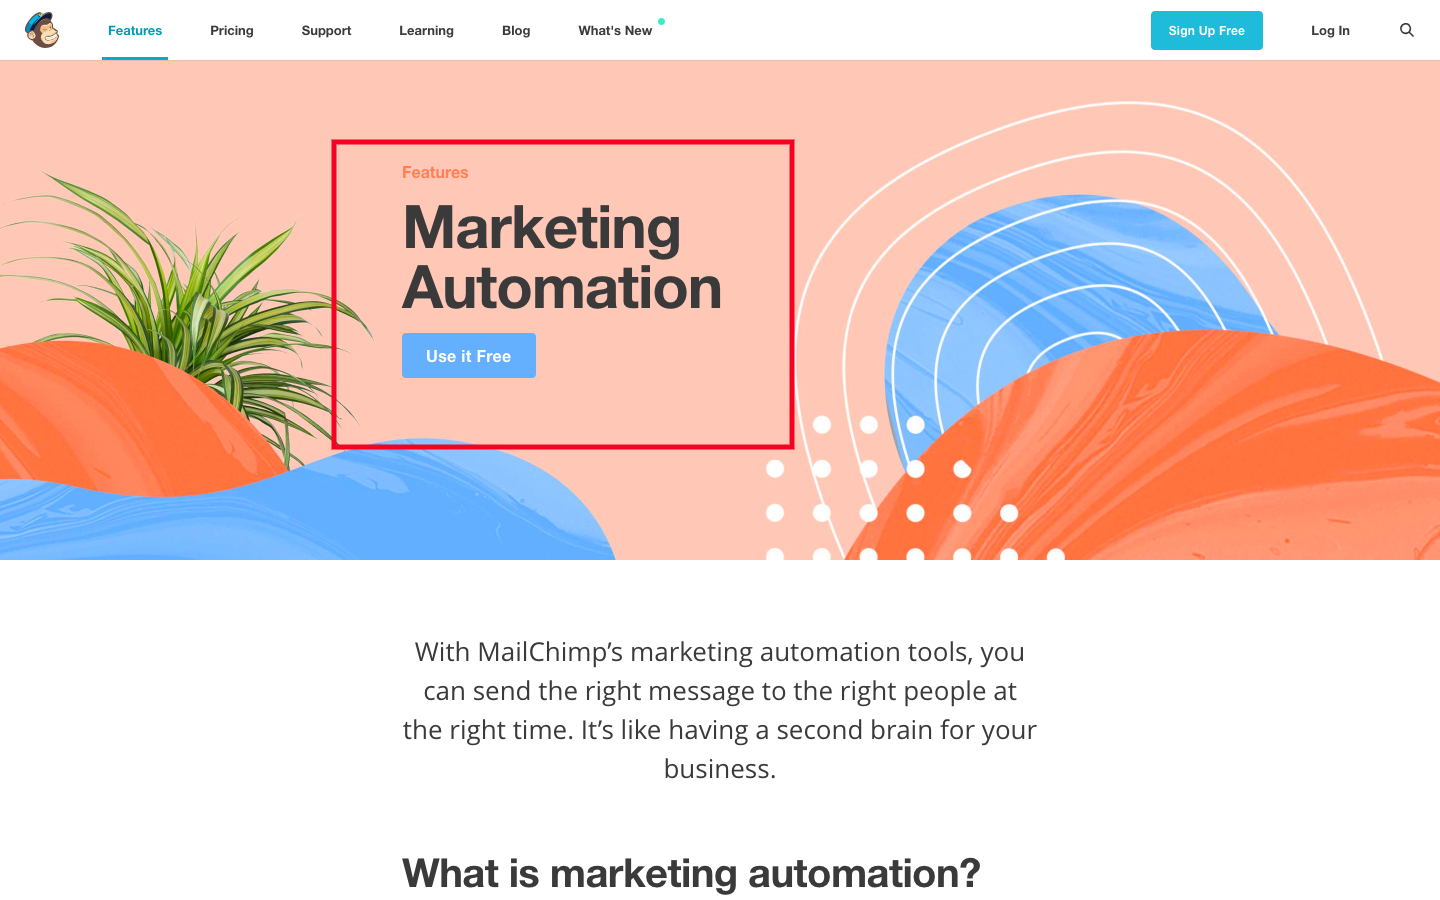 MailChimp homepage uses large type to highlight key features